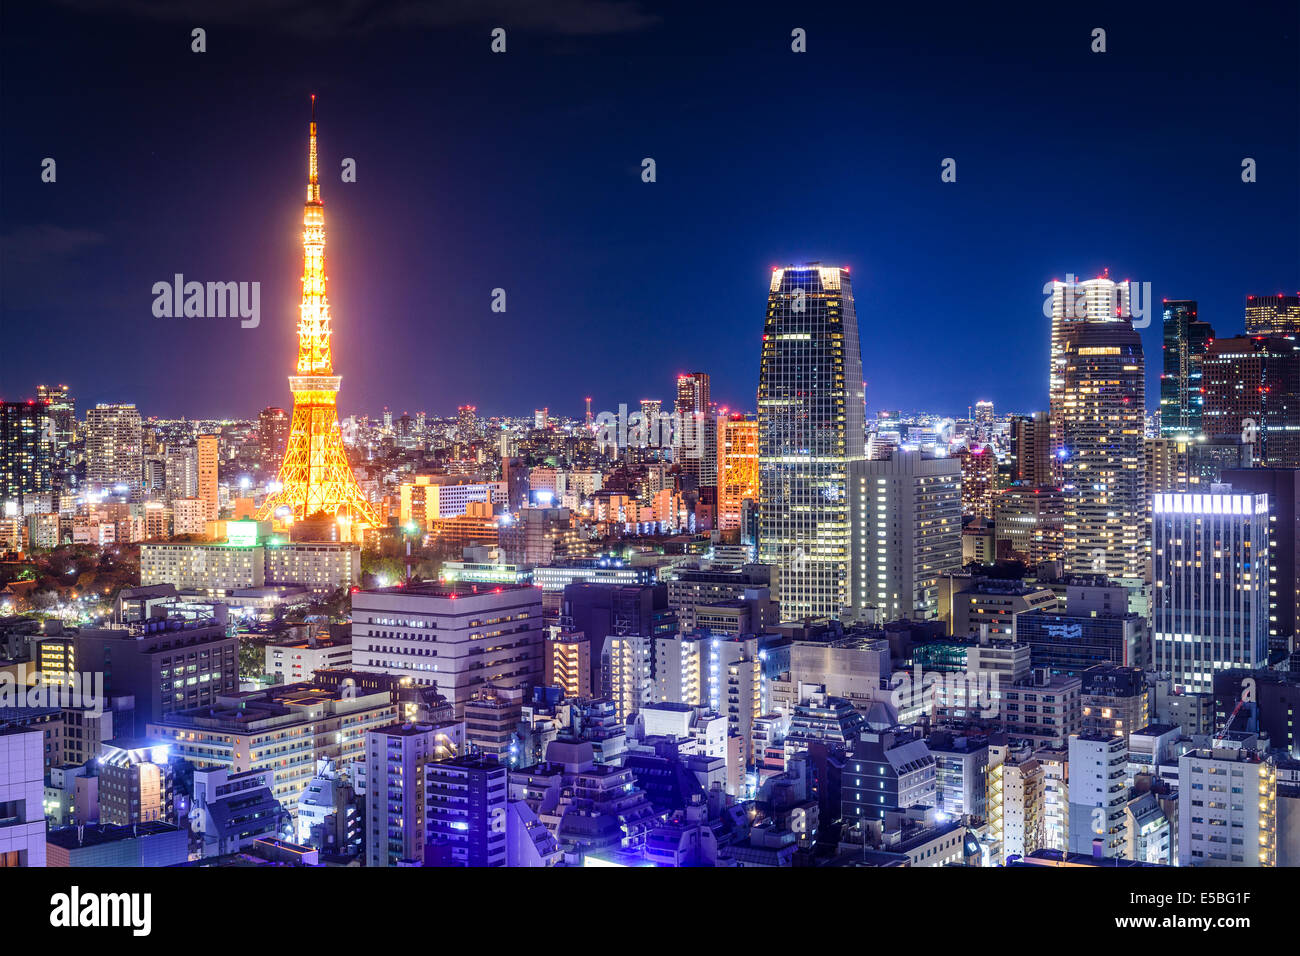 Tokyo, Japan skyline at night. - Stock Image